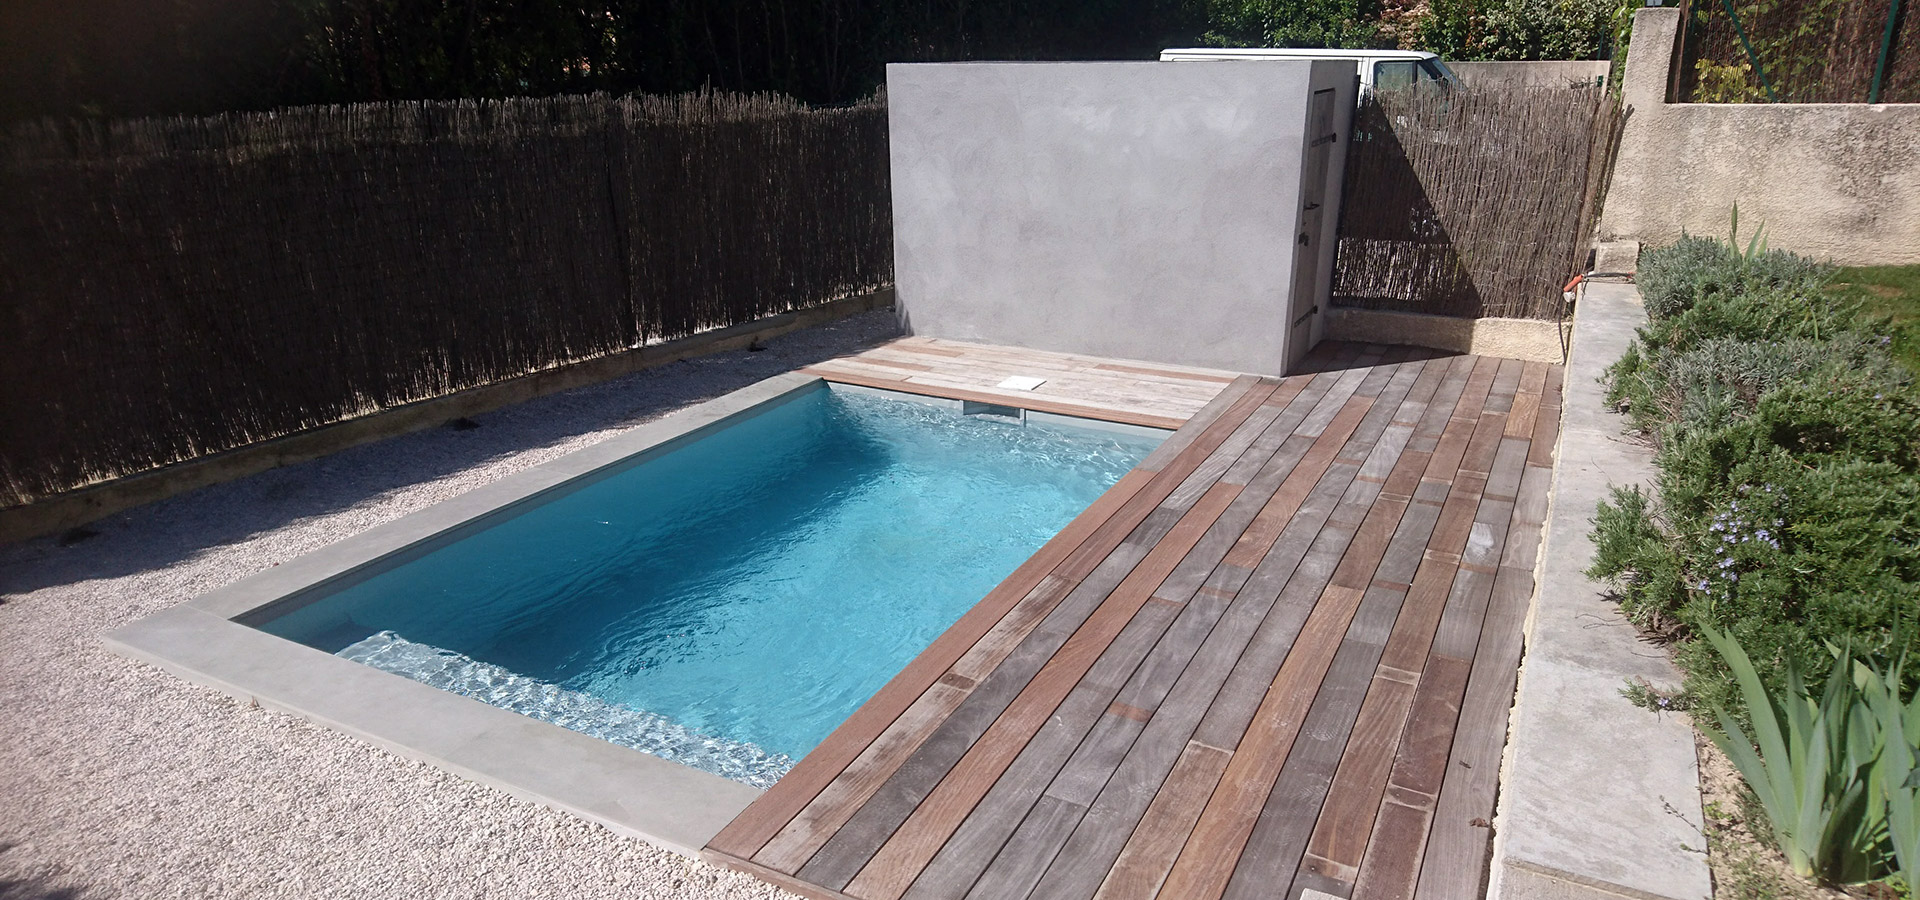 Construction piscine et am nagement ext rieur puyricard rc entreprise - Amenagement exterieur piscine ...